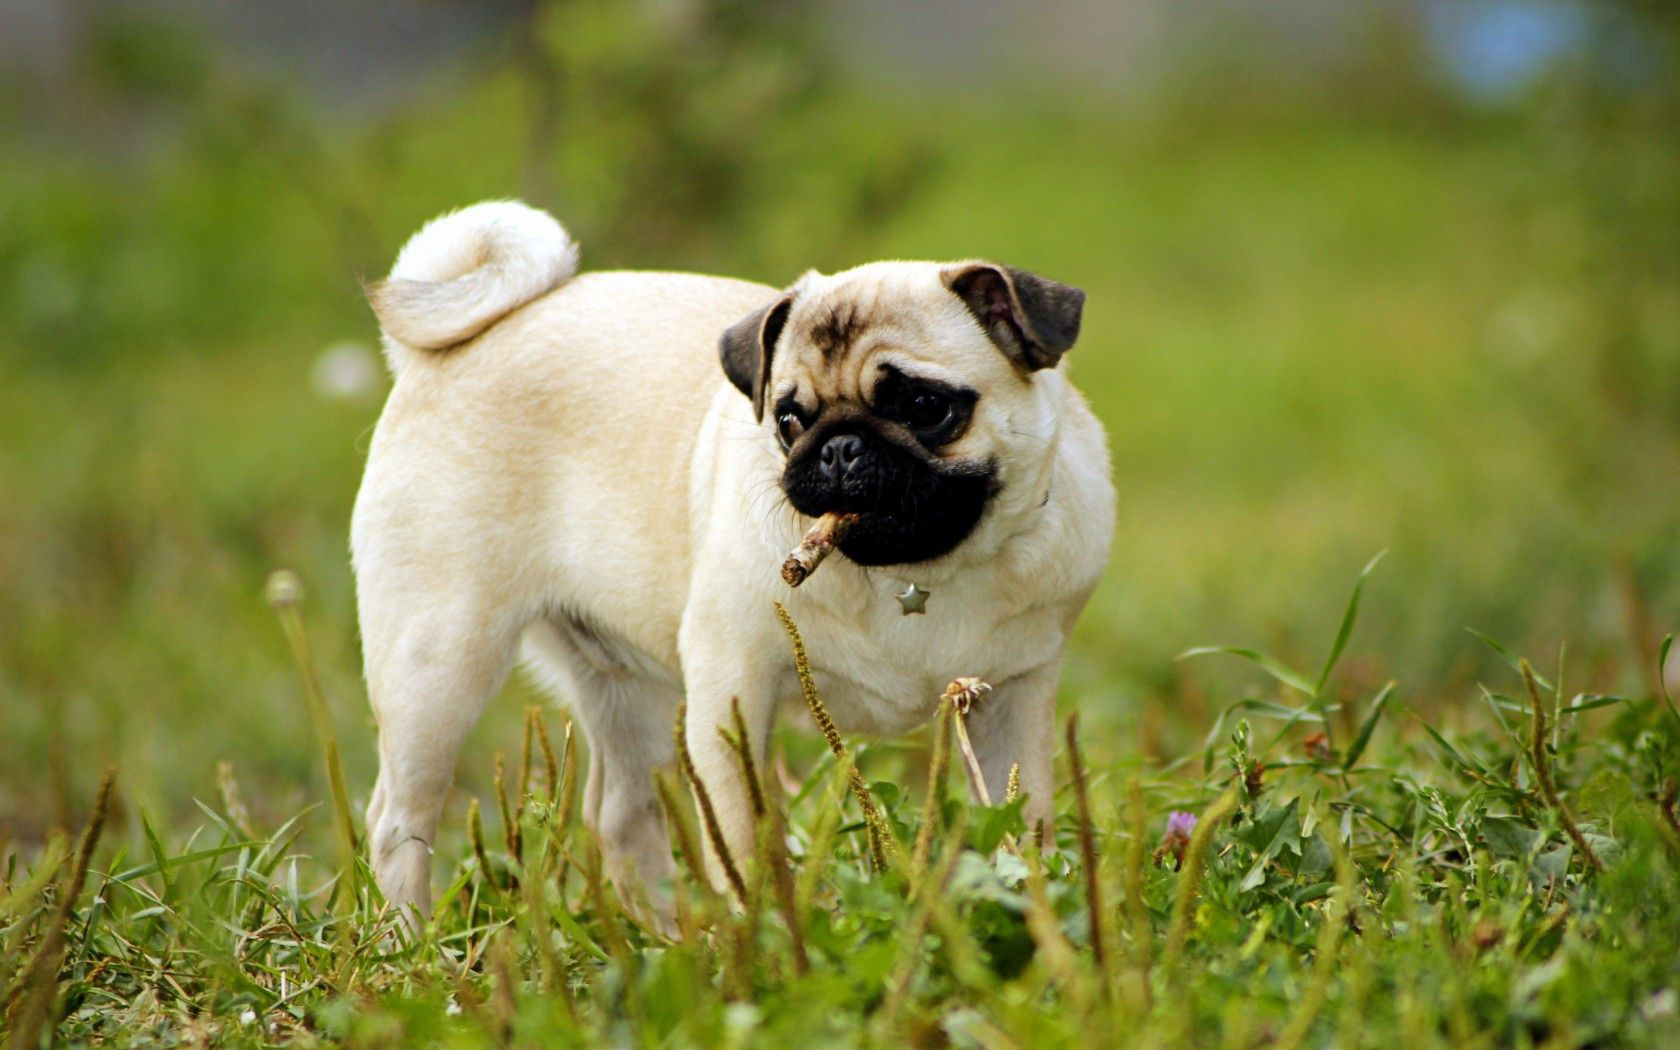 112871 download wallpaper Animals, Pug, Dog, Puppy, Grass, Greens screensavers and pictures for free